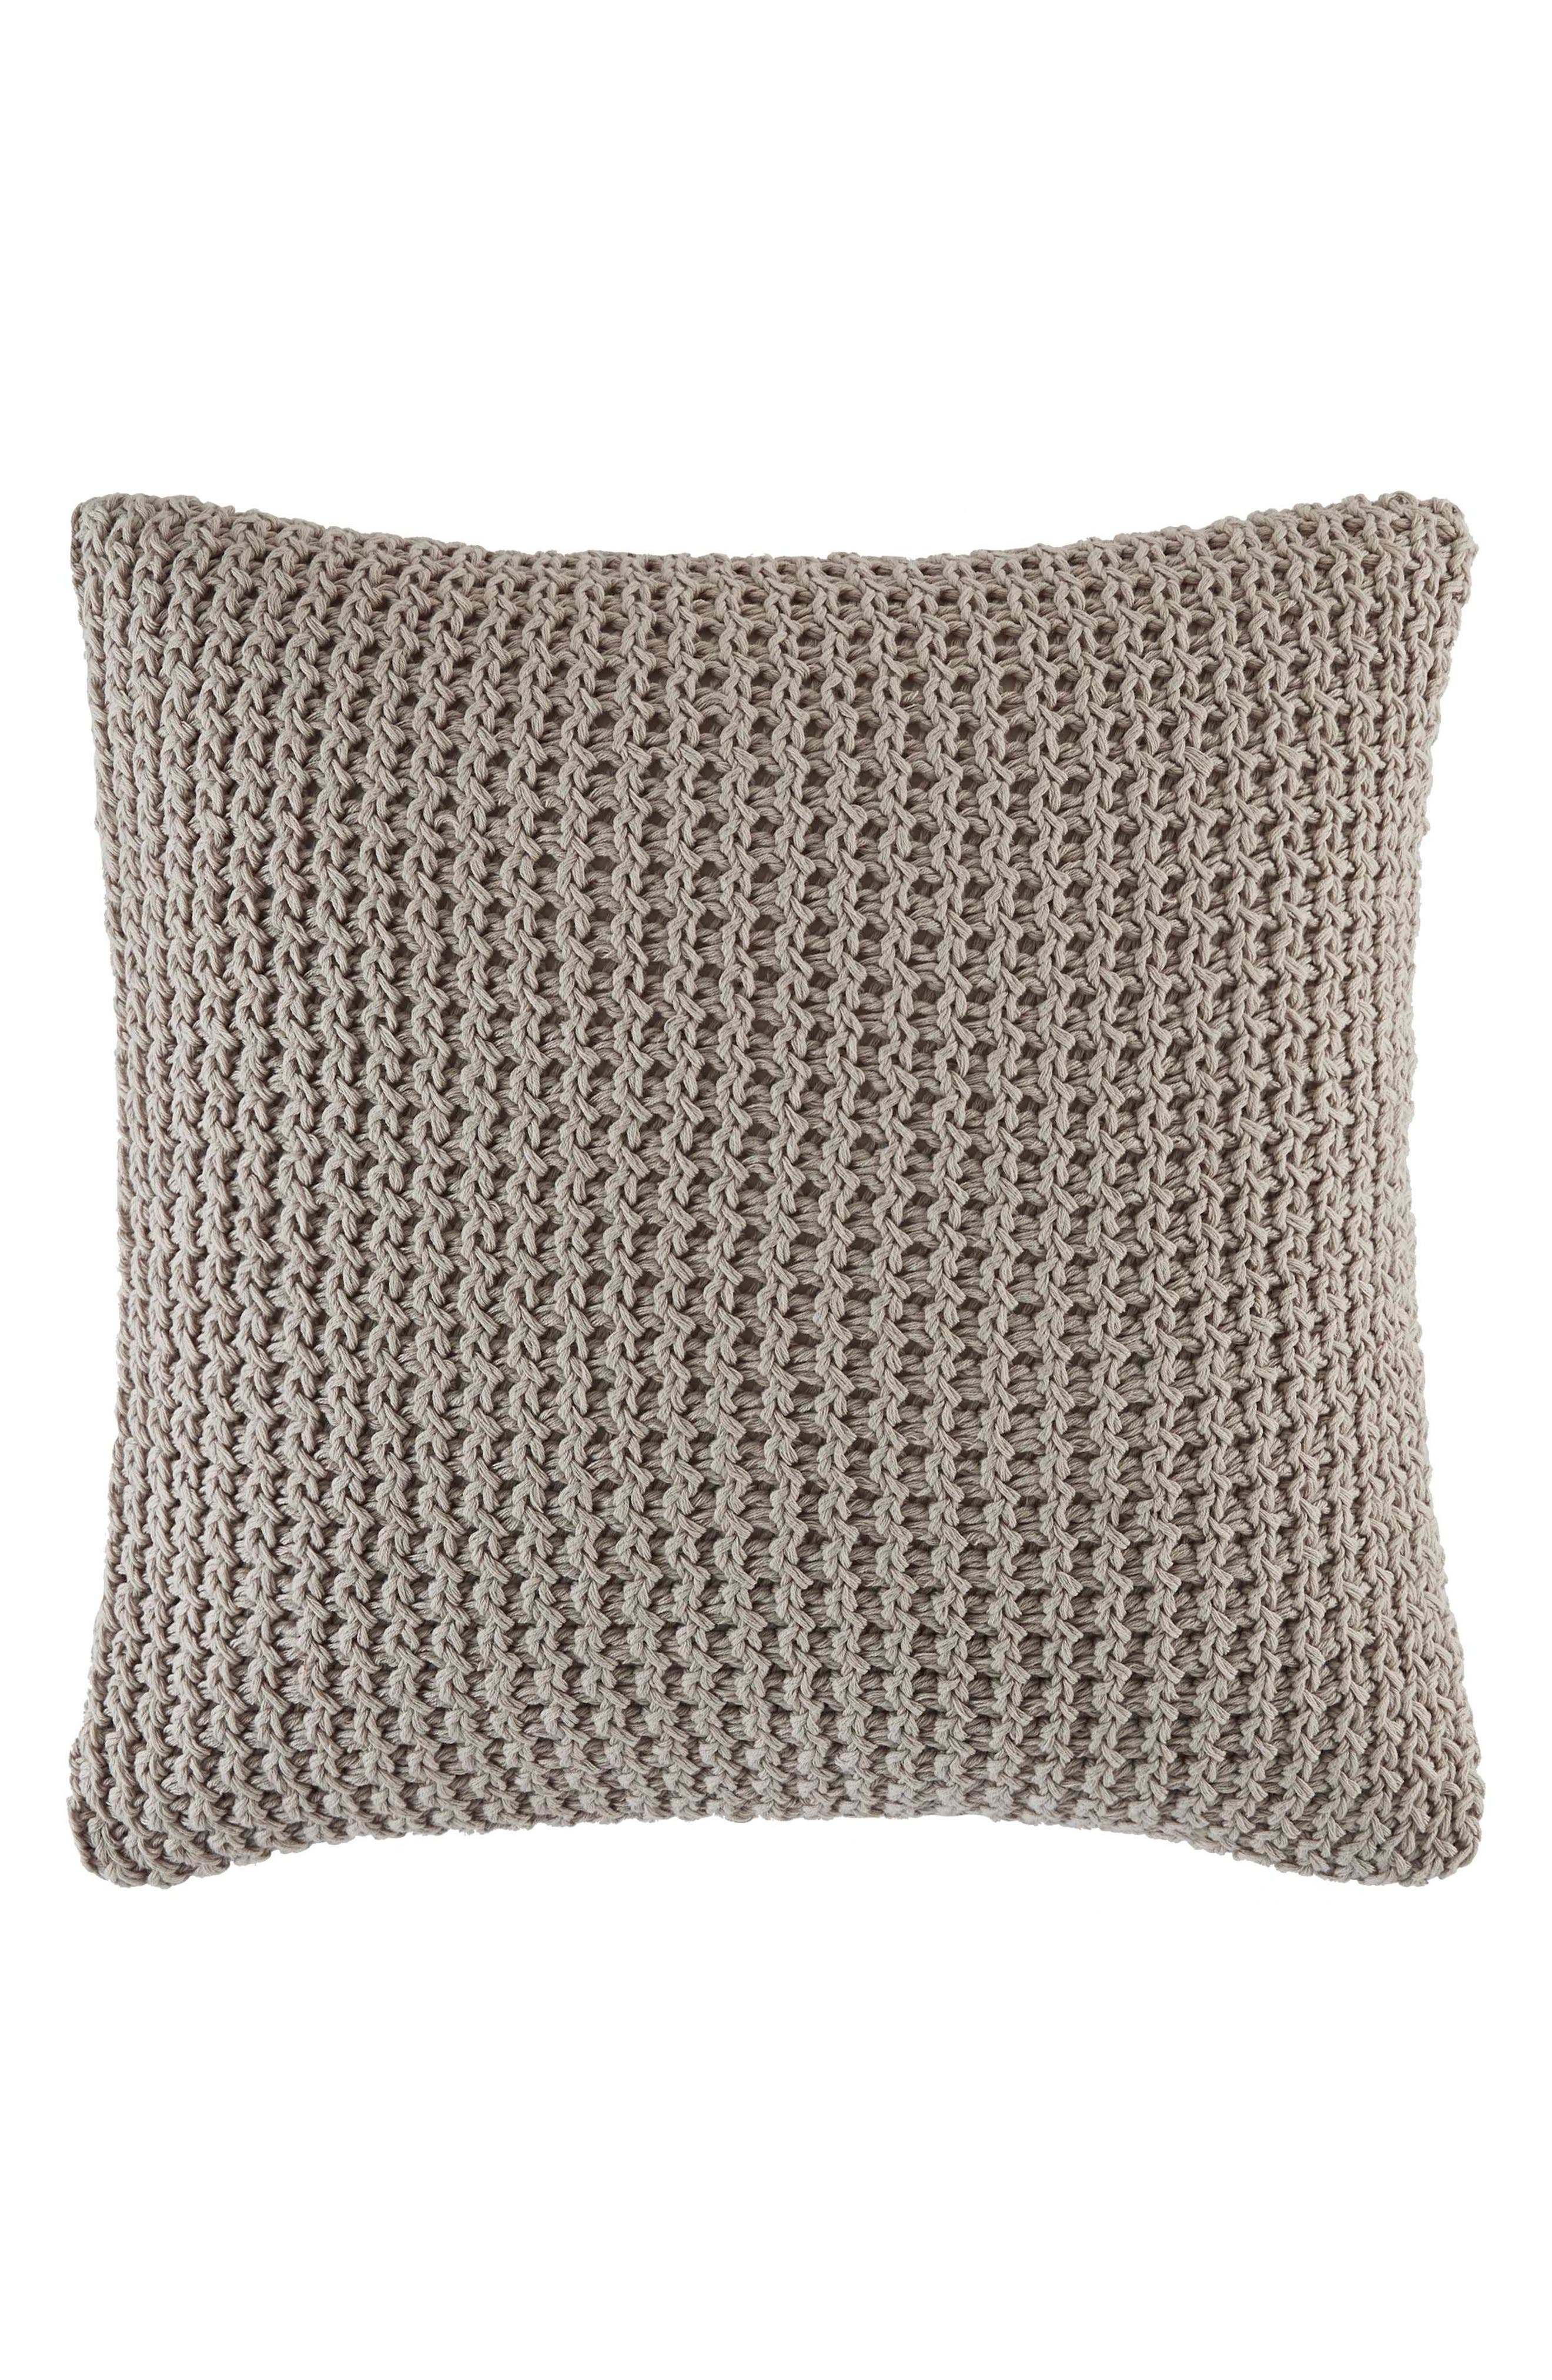 Knotted Pillow,                             Main thumbnail 1, color,                             055